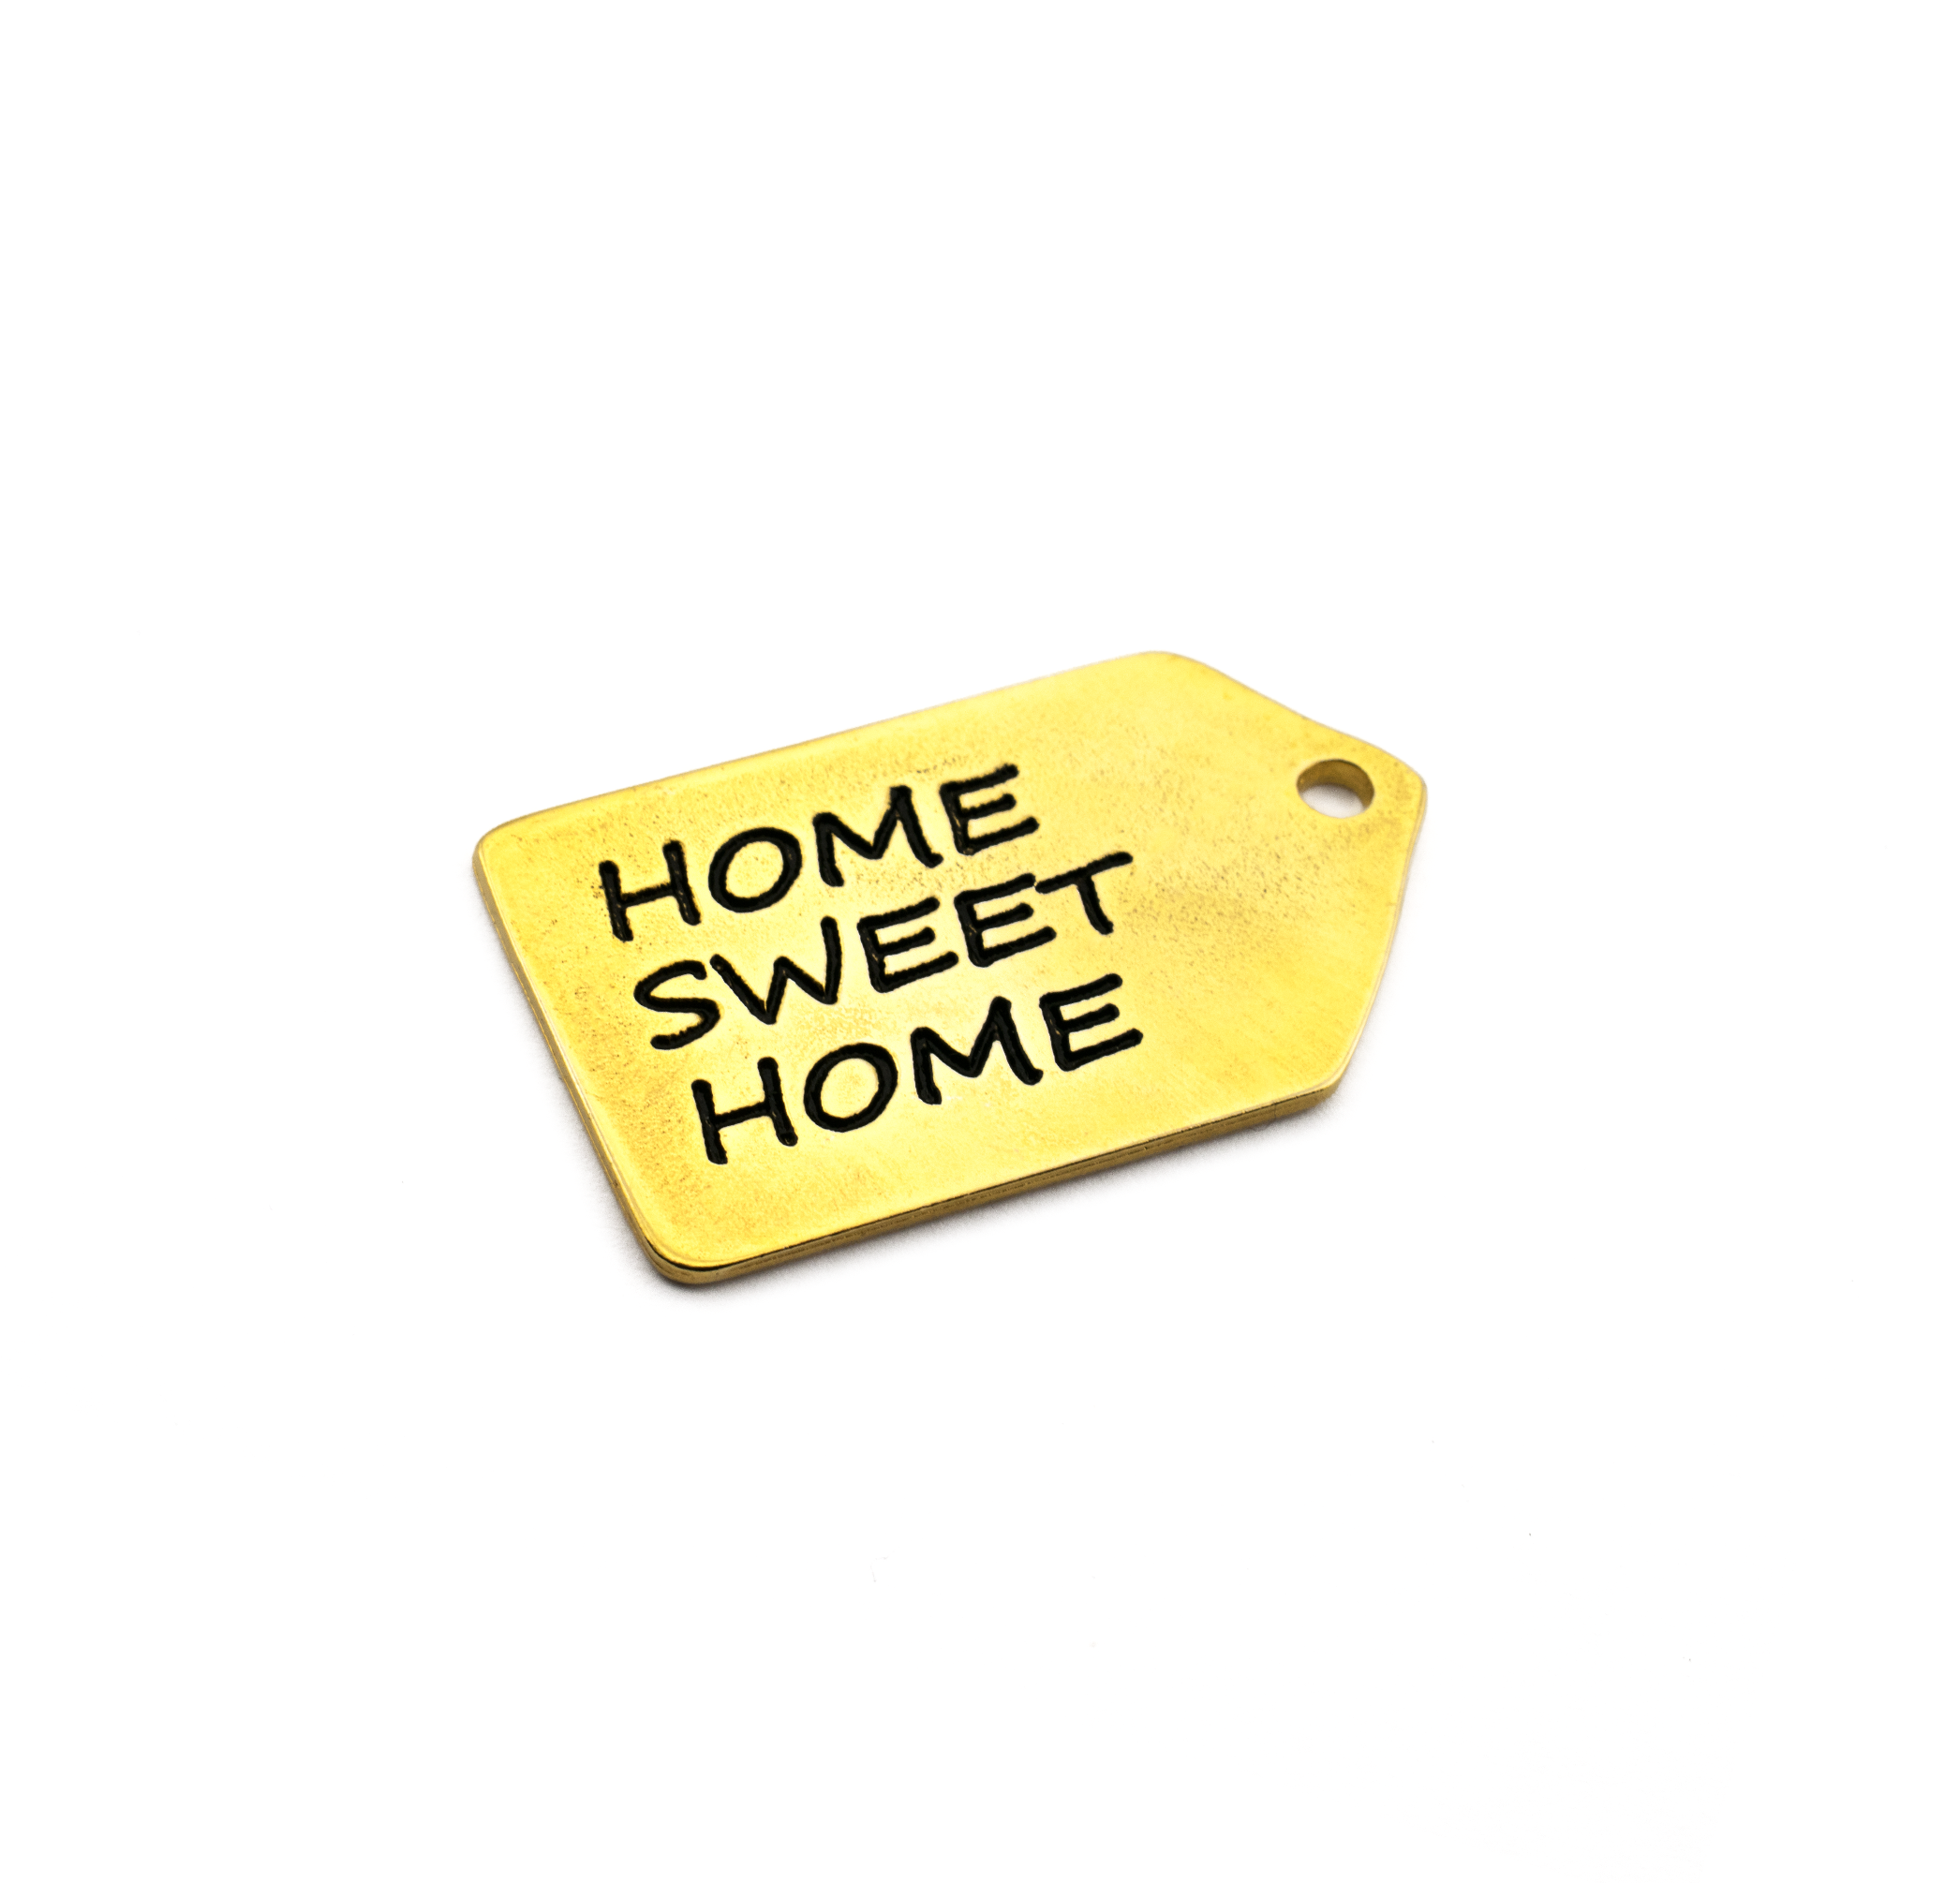 """PENDANT  """"HOME SWEET HOME"""" GOLD PLATED 47x27mm"""